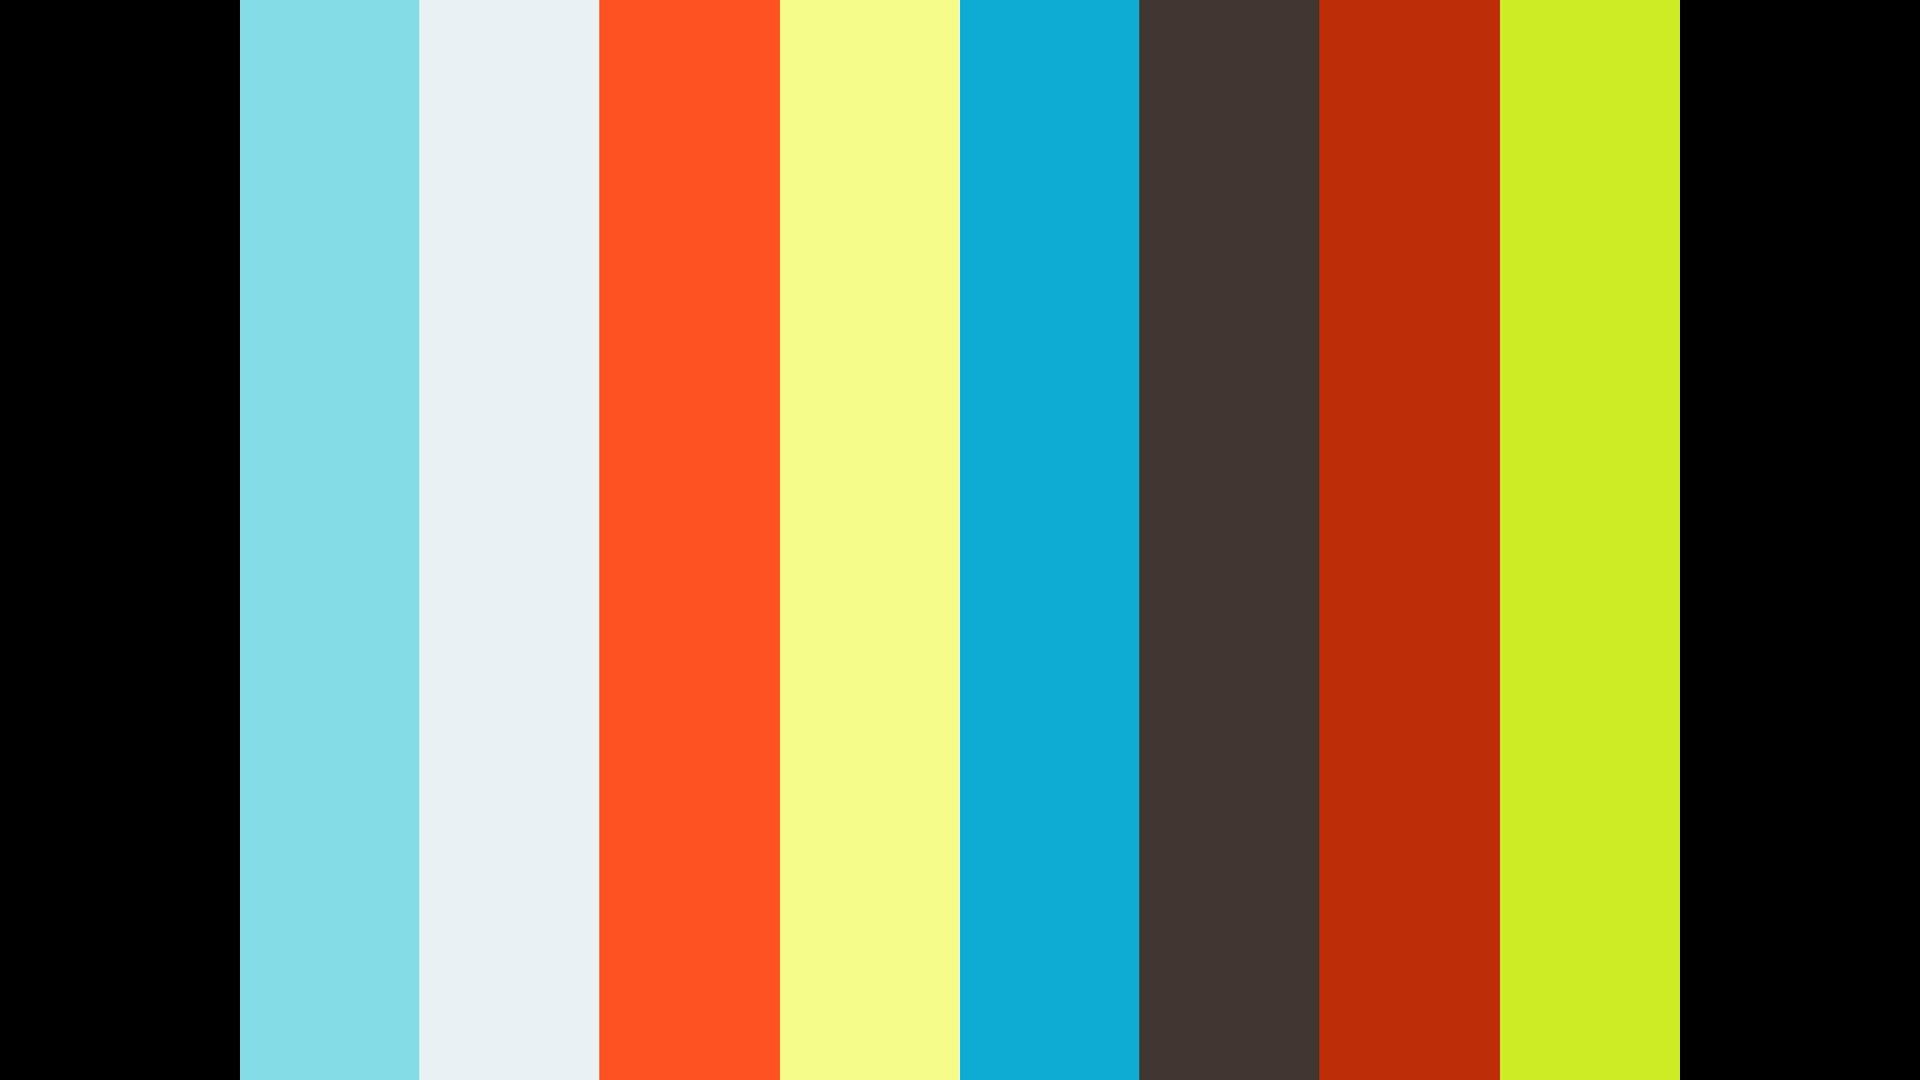 Recession Discussion - Nov. 5, 2015